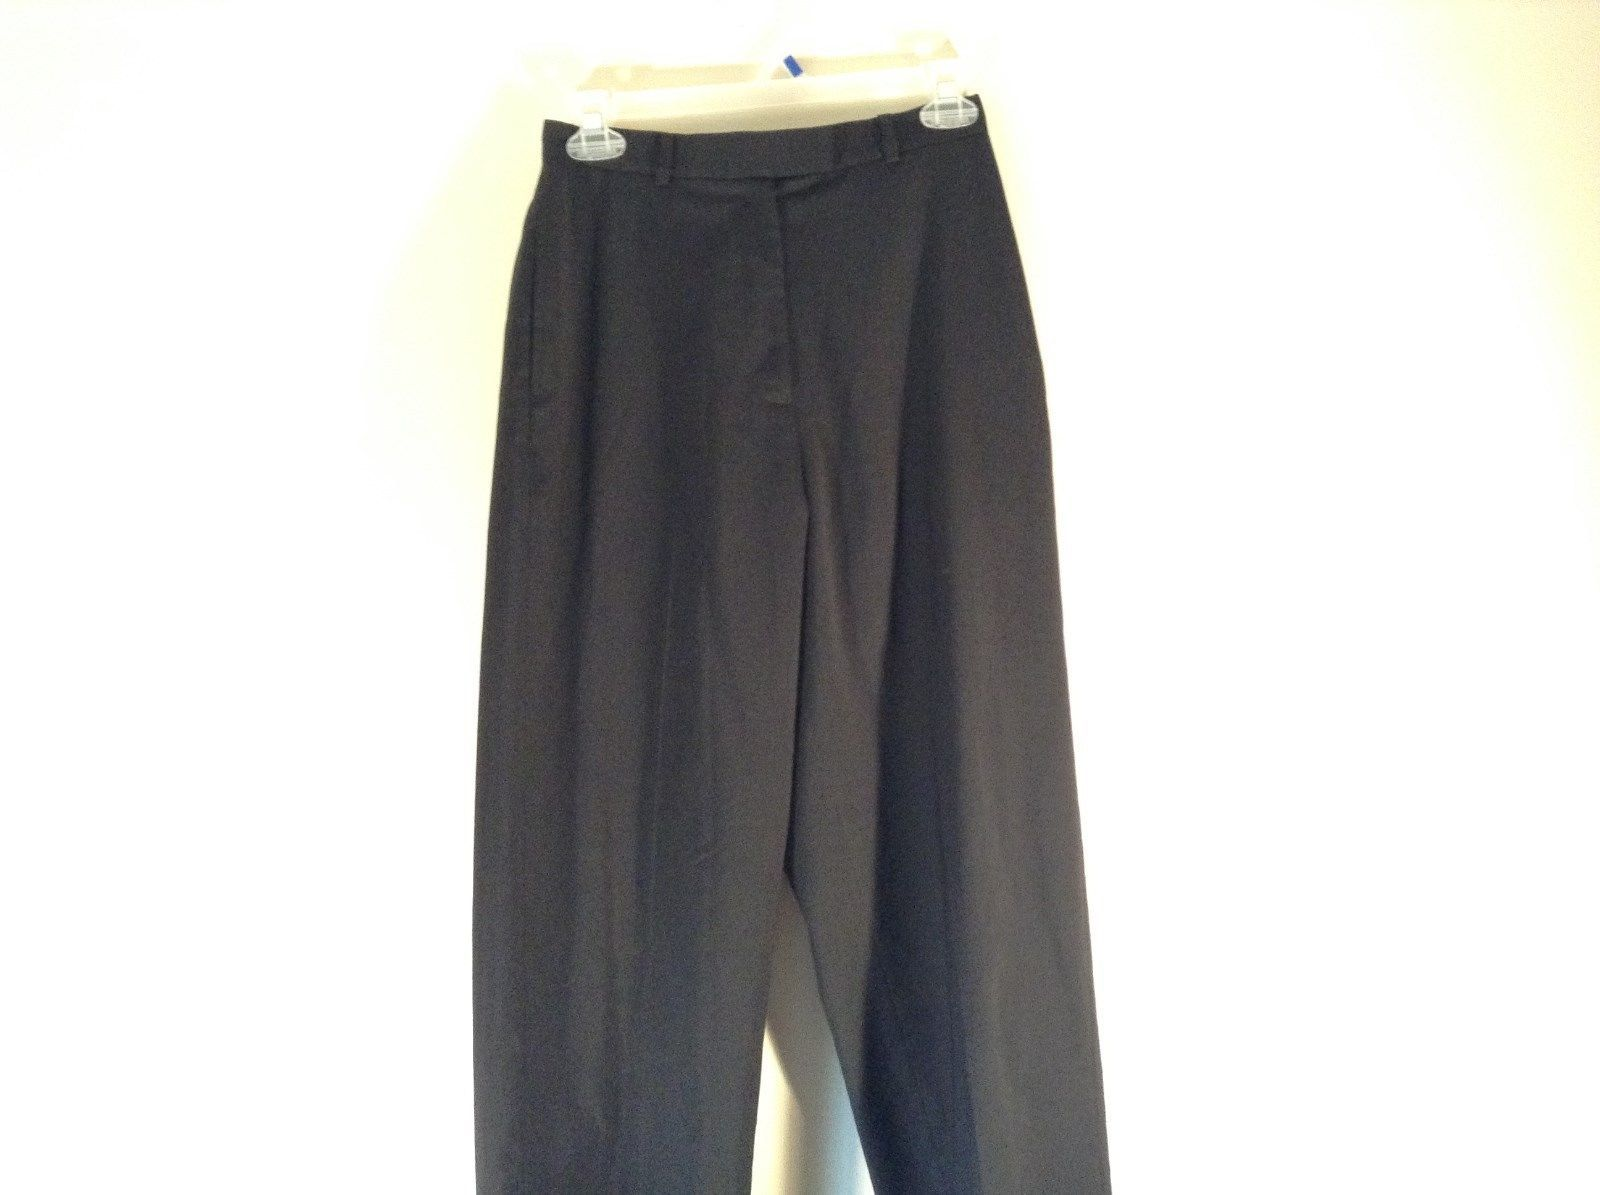 Eddie Bauer Size 4 Black Dress Pants Wool Blend Lined Excellent Condition